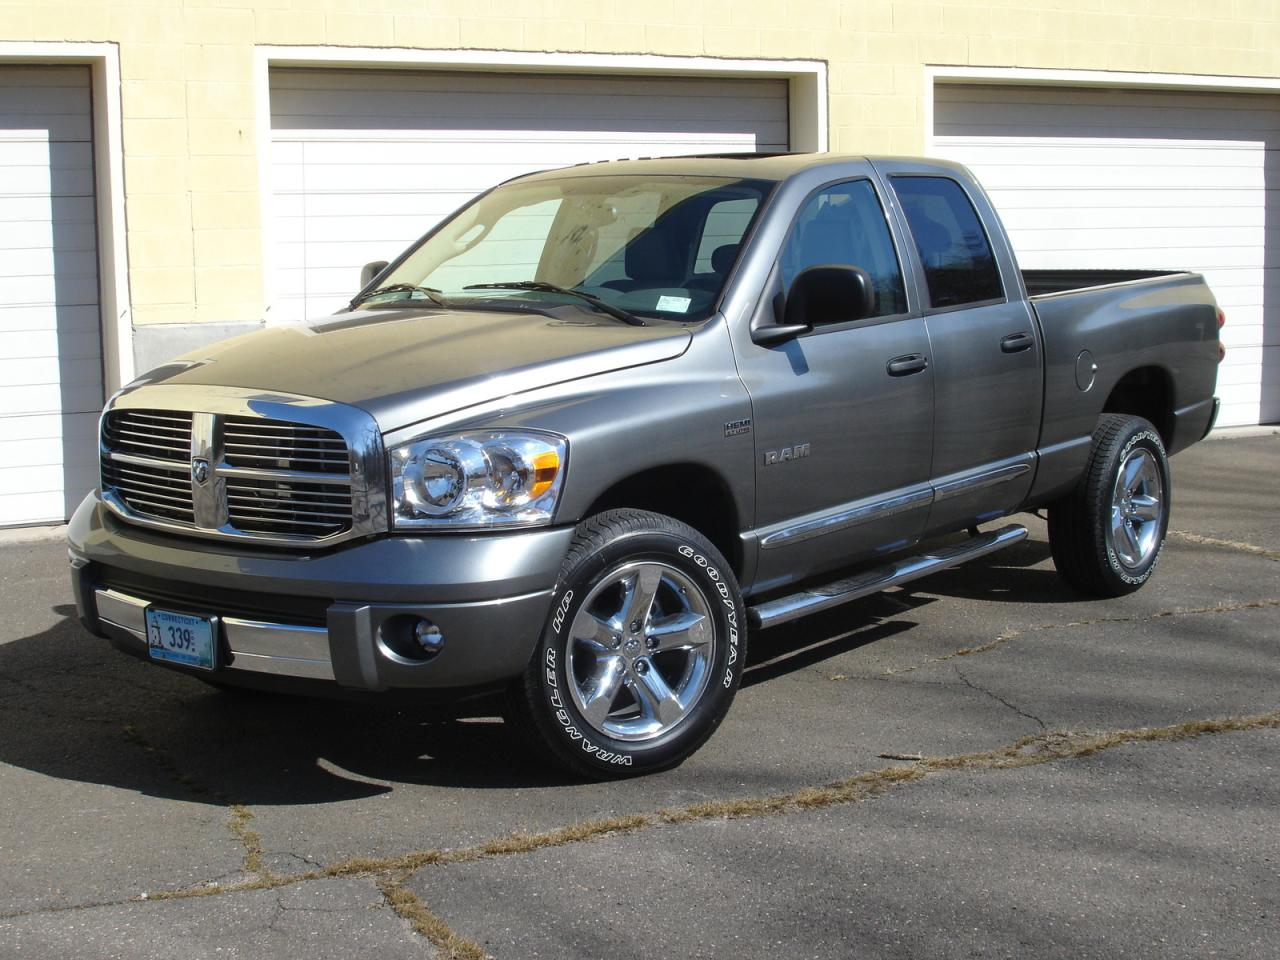 2008 dodge ram pickup 1500 information and photos zombiedrive. Black Bedroom Furniture Sets. Home Design Ideas